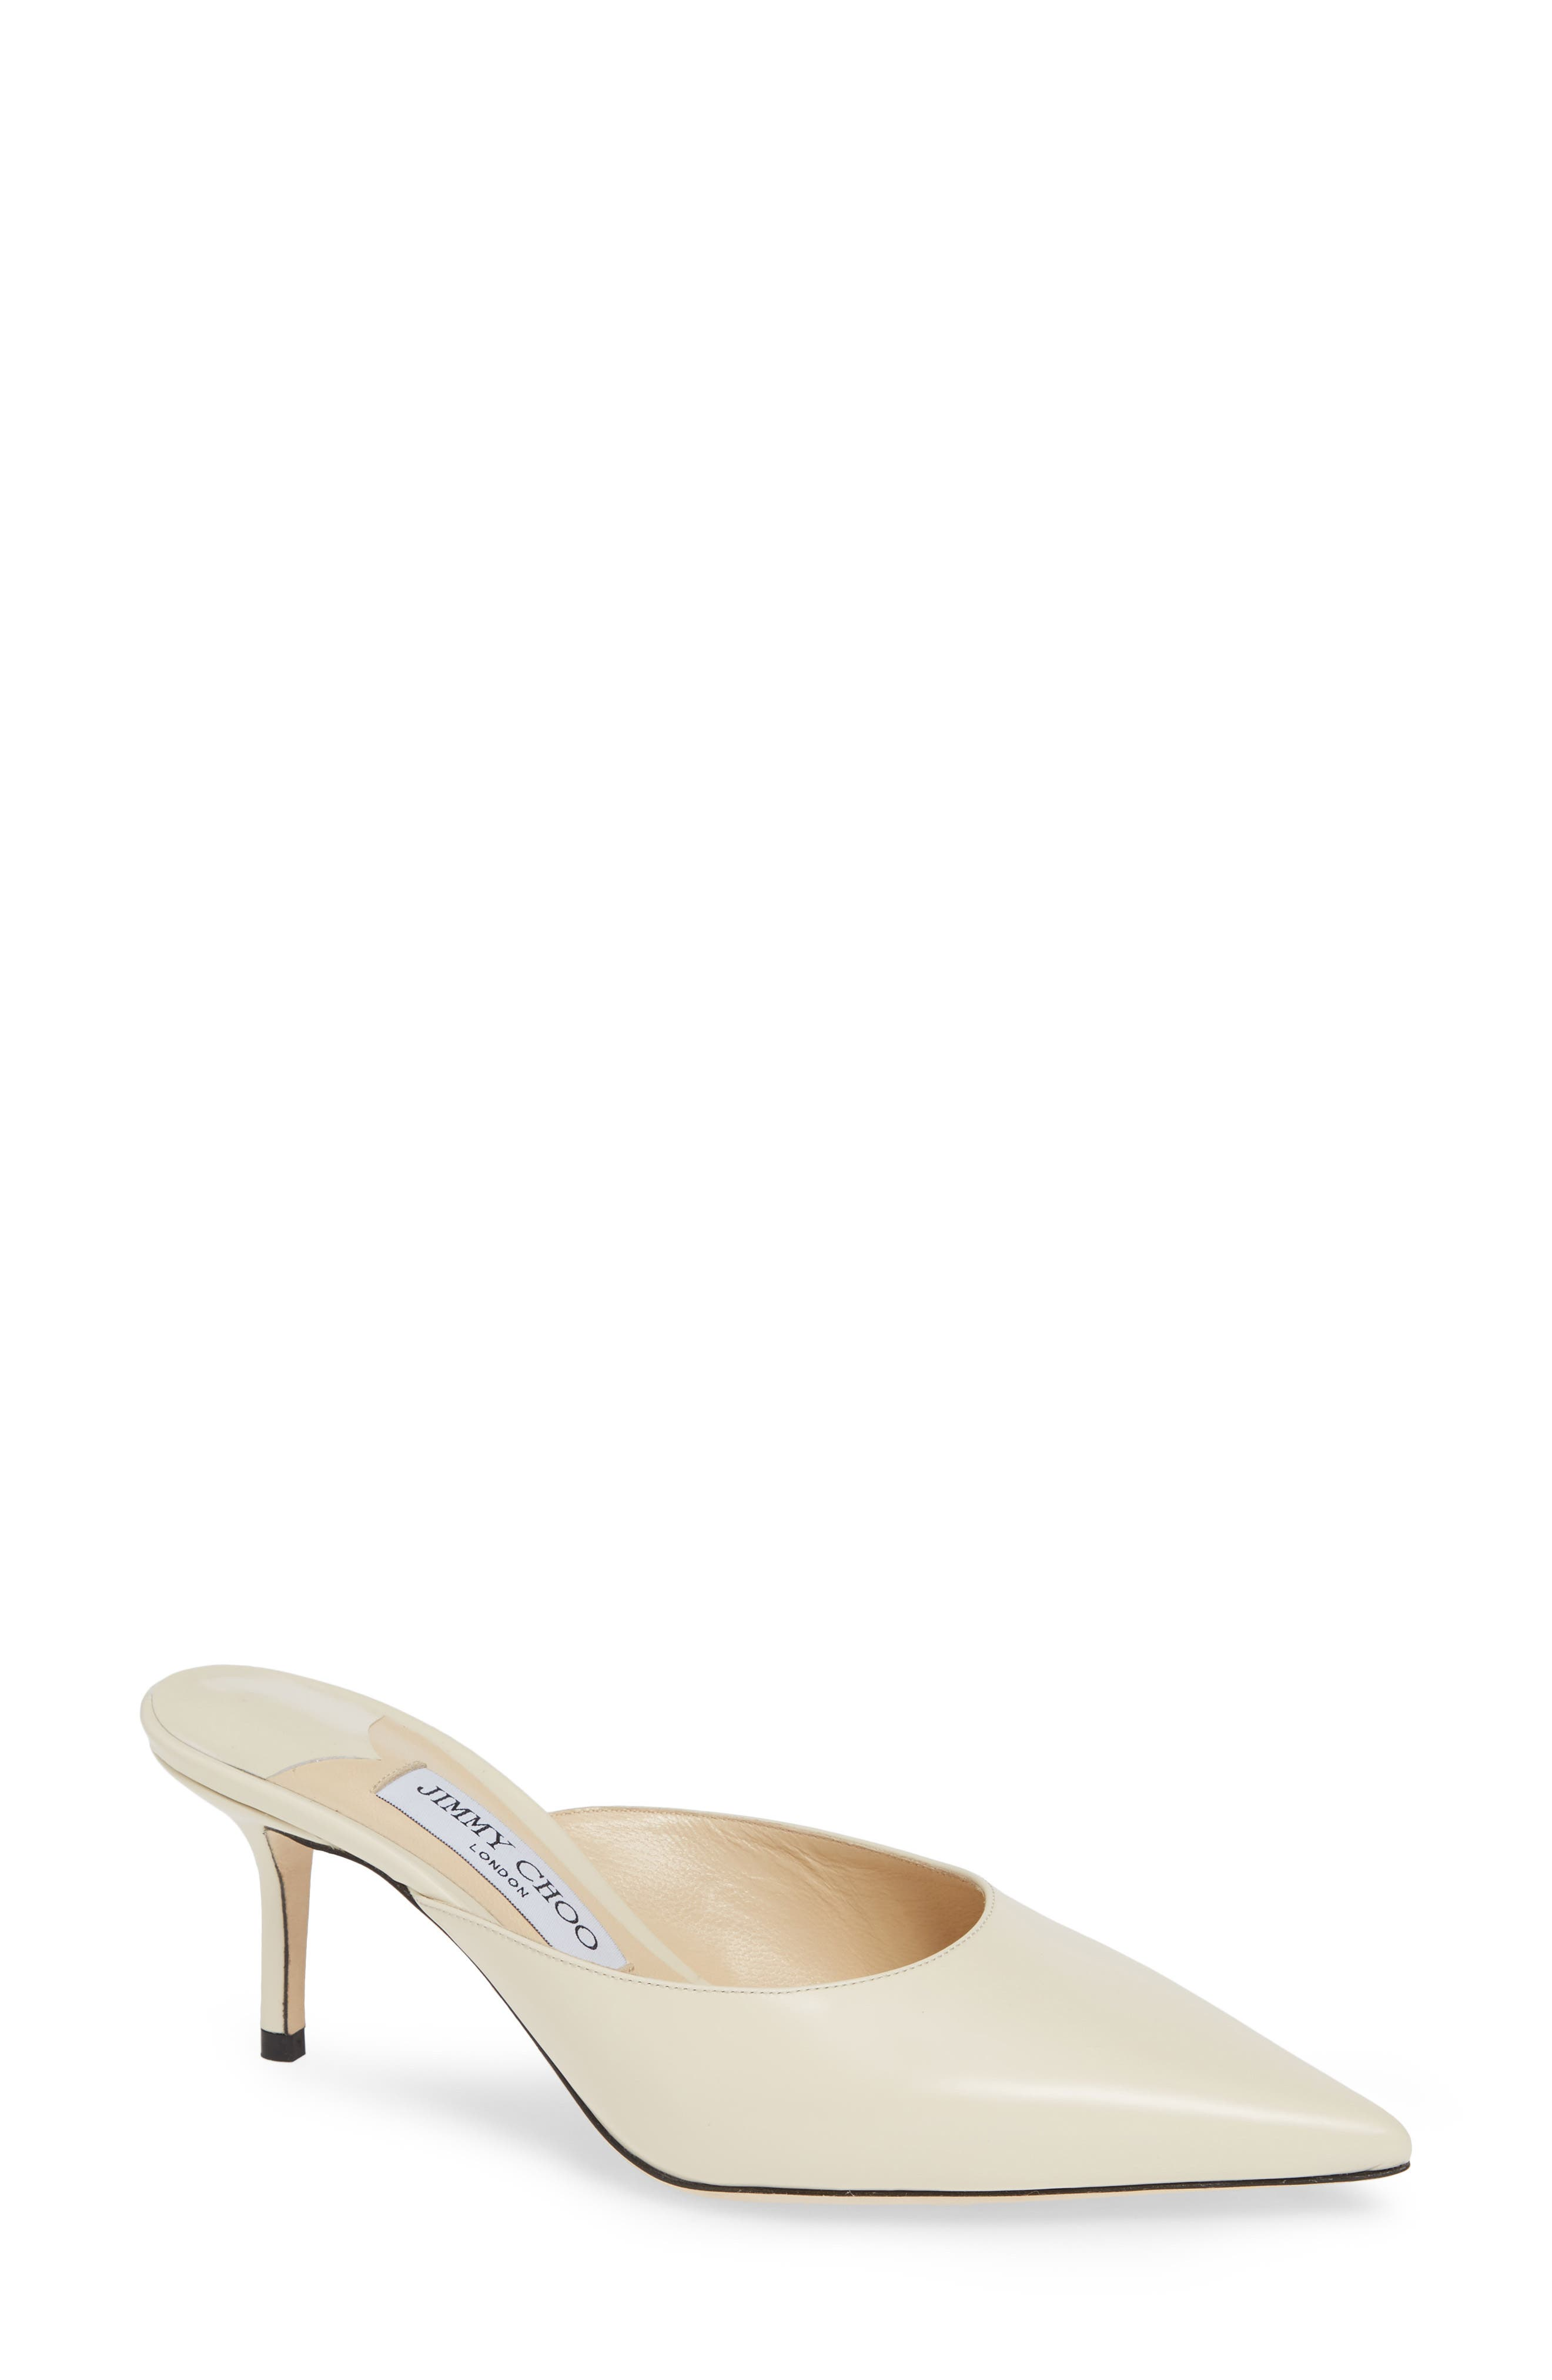 Women'S Rav 65 Pointed-Toe High-Heel Mules in Linen